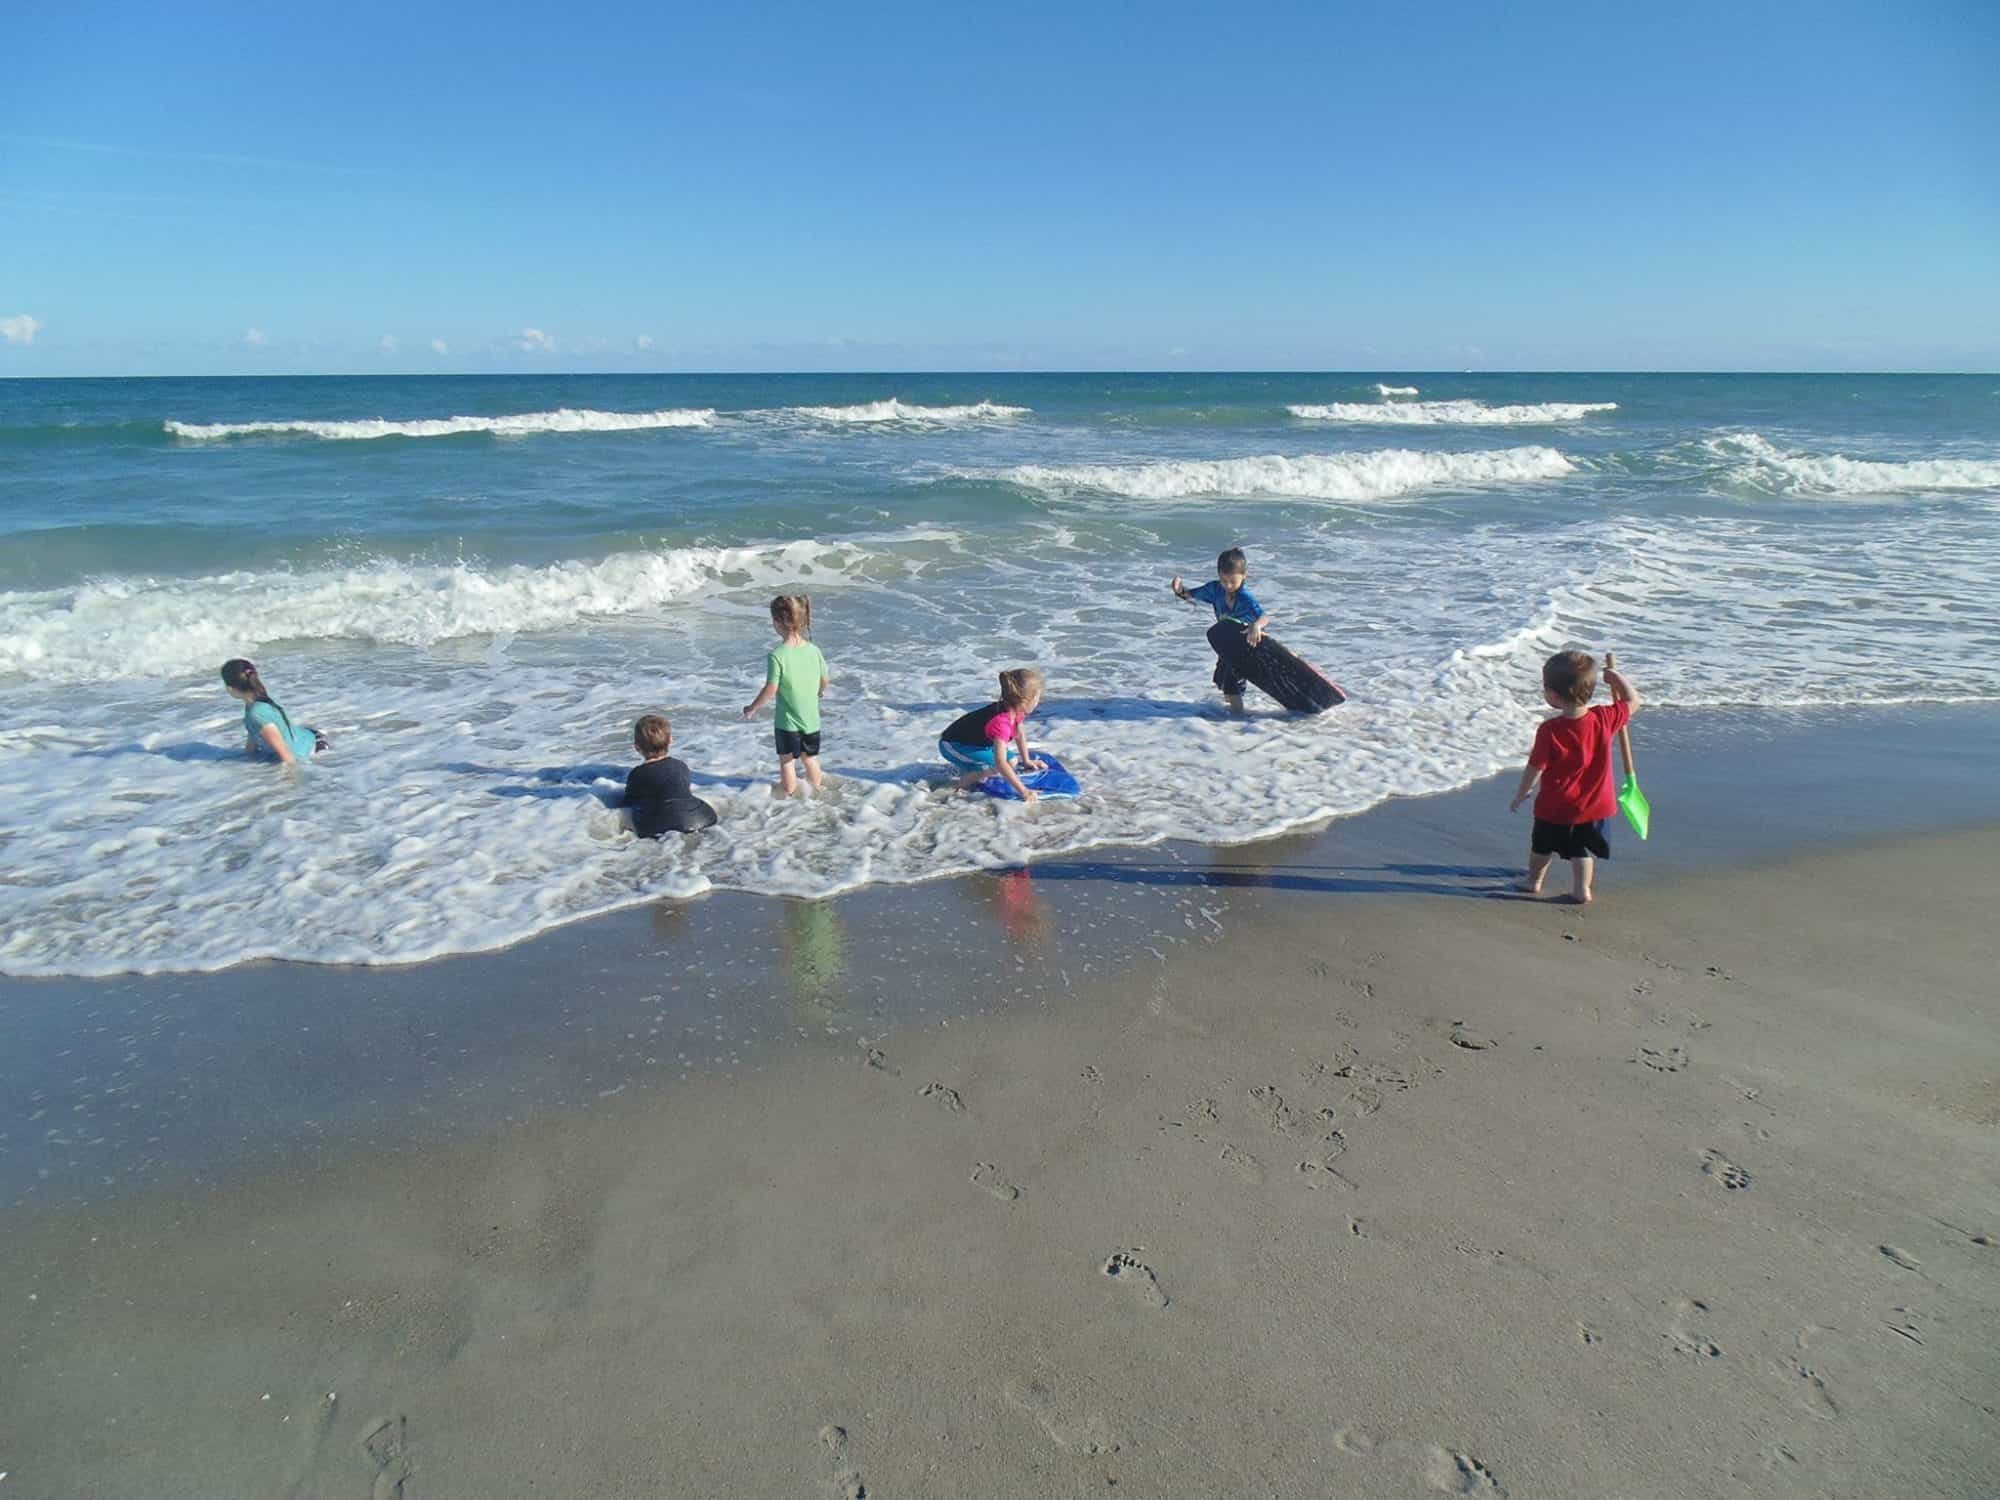 One Busy Homeschooling Mom's Way To Stay On Top Of Meals With K.I.S.S. A day at the beach with the kids